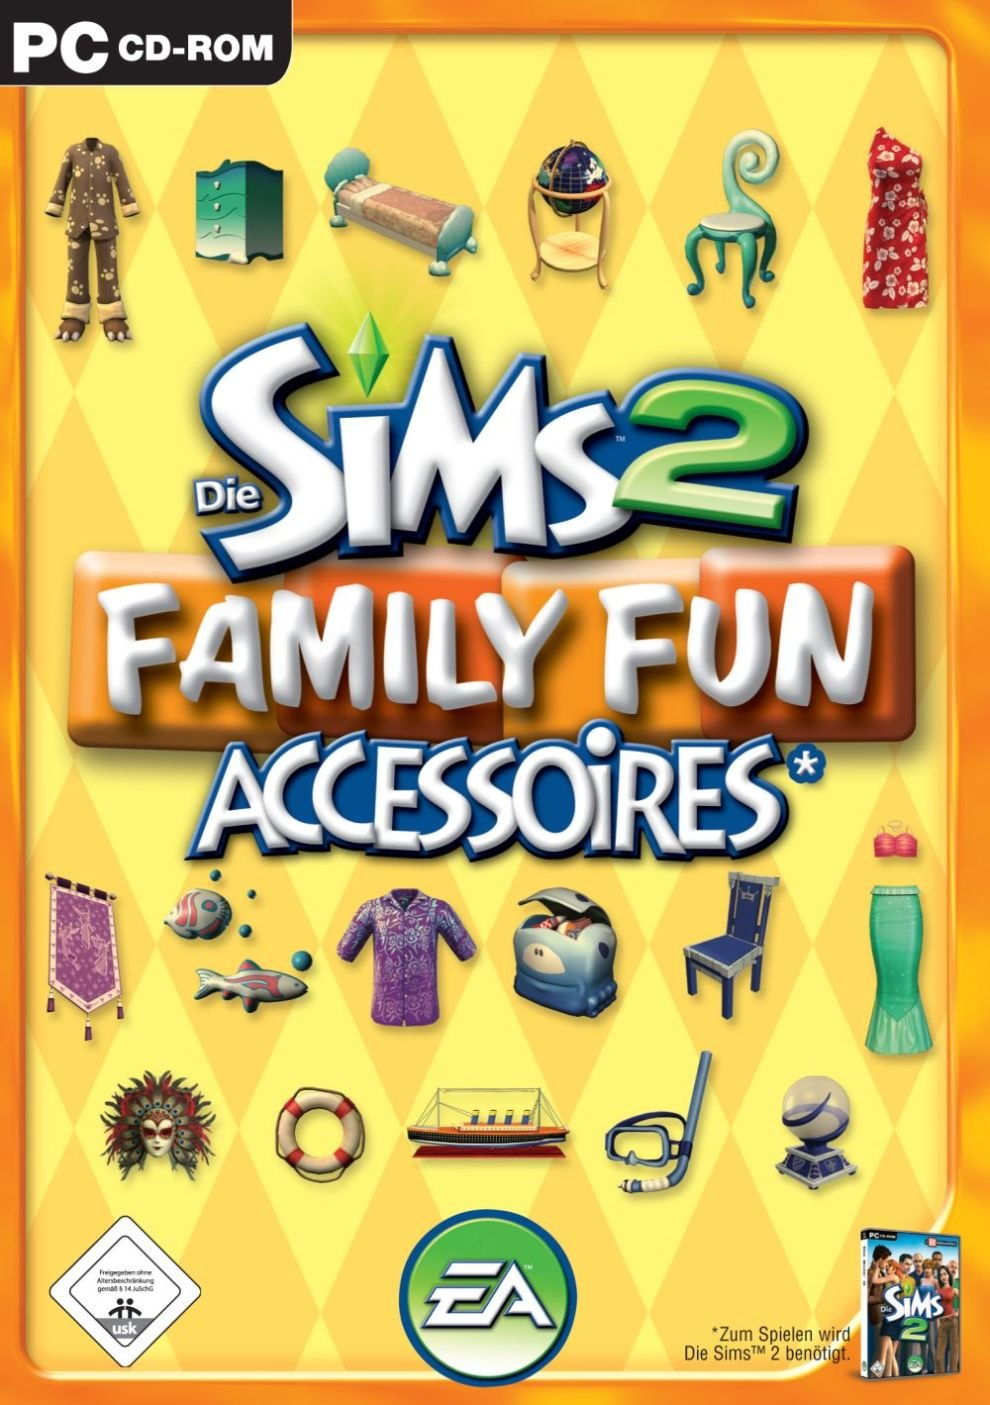 Die Sims 2: Family Fun Accessoires (Add On): Pc: Amazon.de: Games